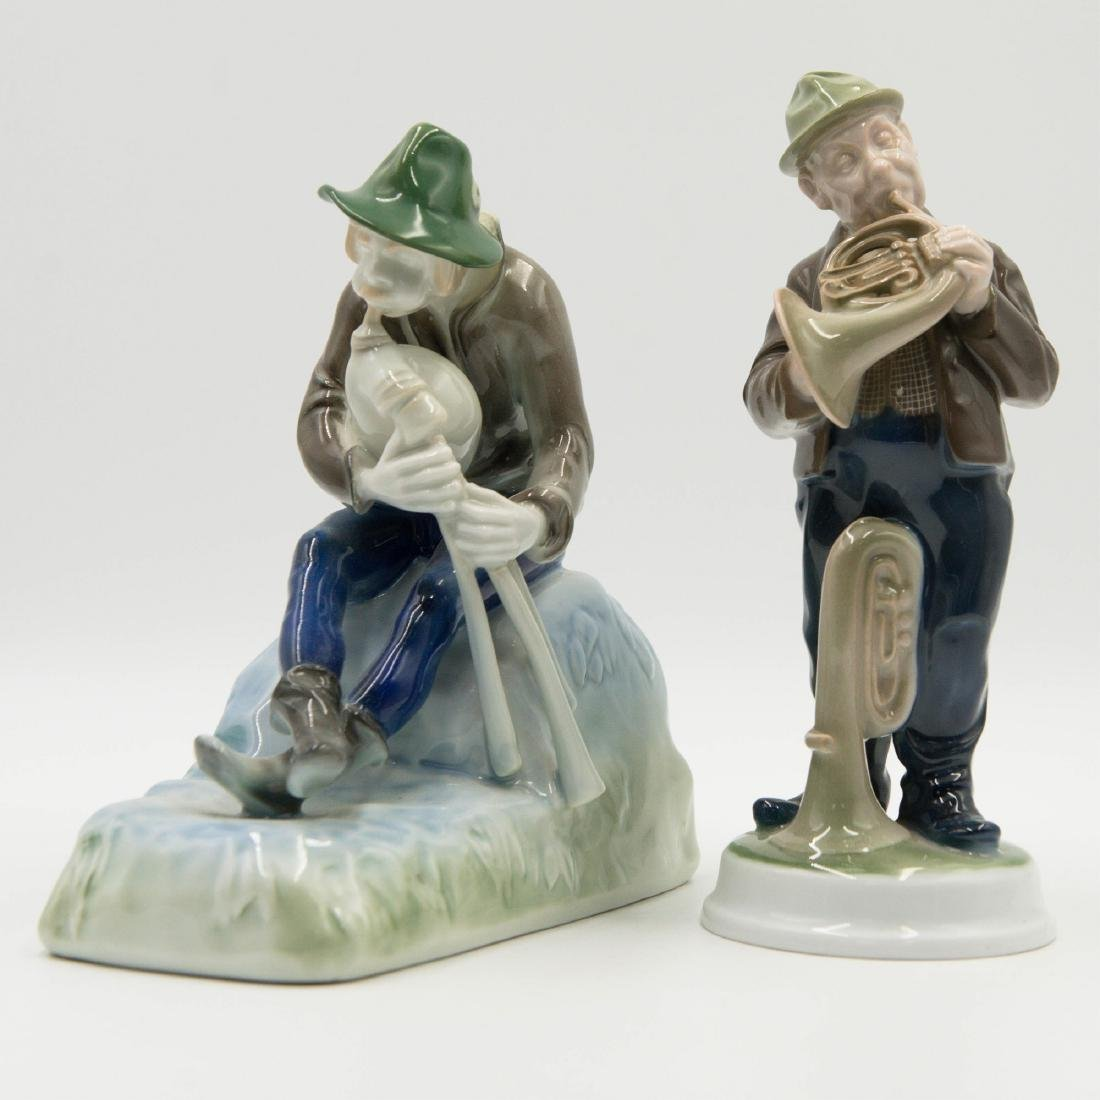 PAIR OF ROSENTHAL MUSICIANS GROUP FIGURINE